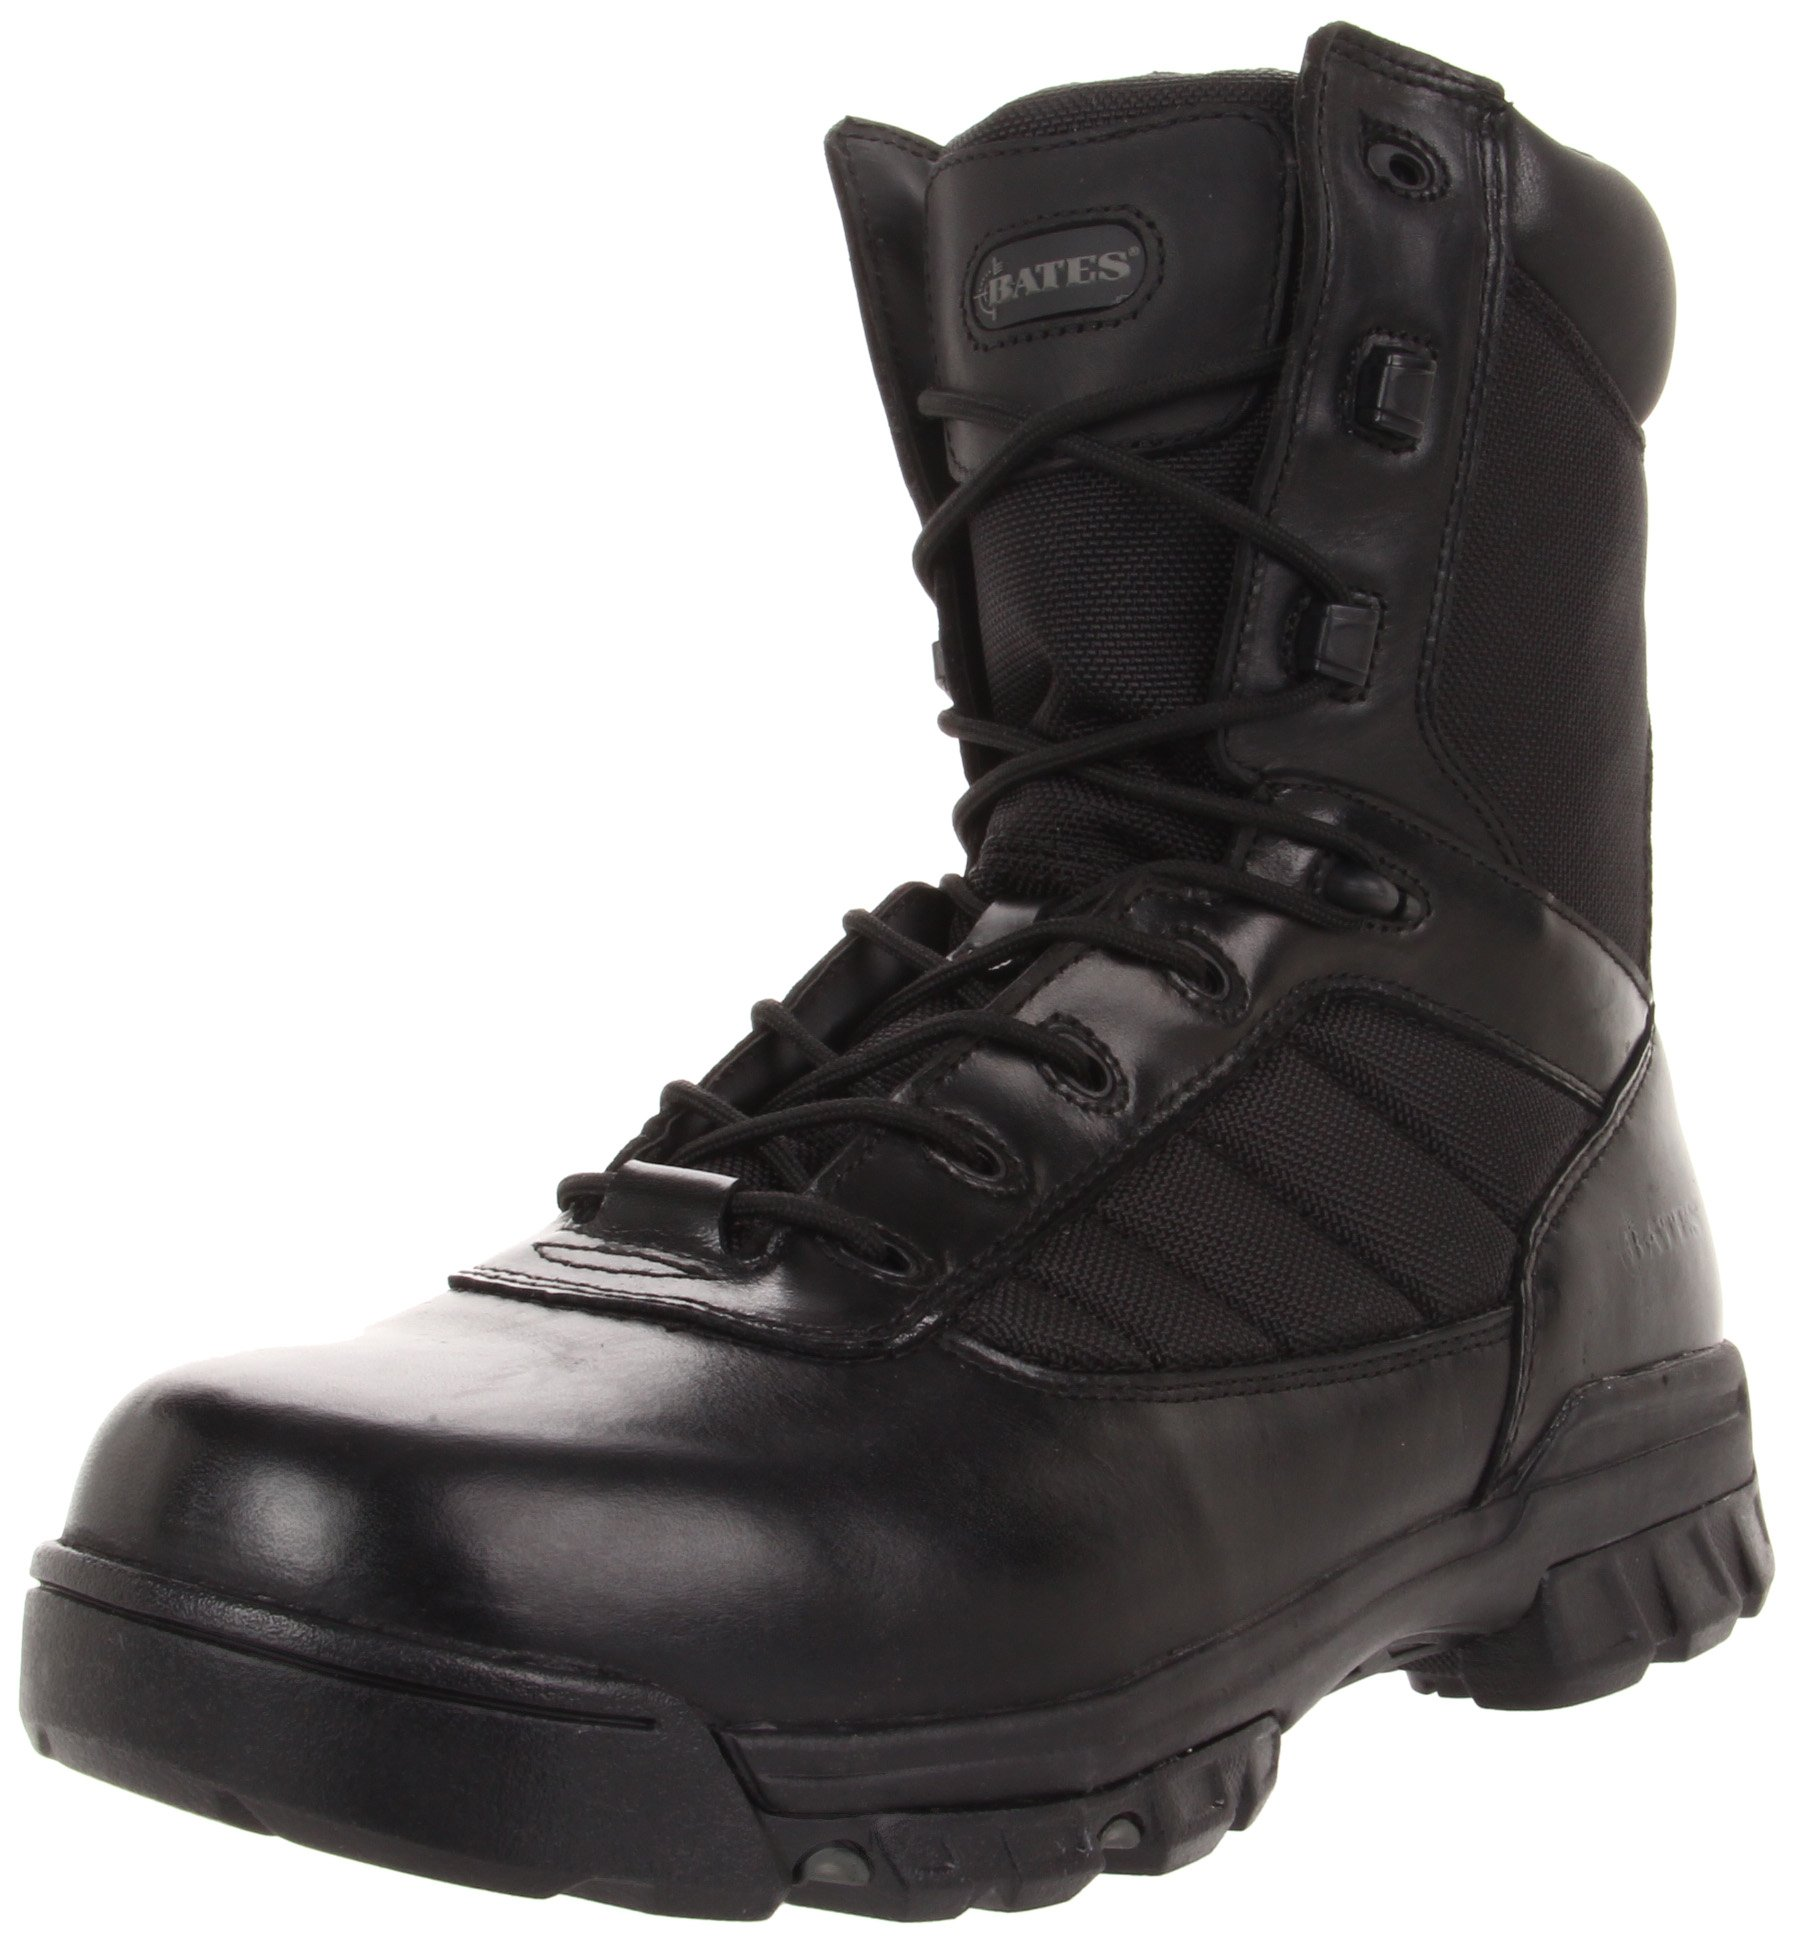 Bates Men's Ultra-Lites 8 Inches Tactical Sport Side Zip Work Boot,Black,12 EW US by Bates